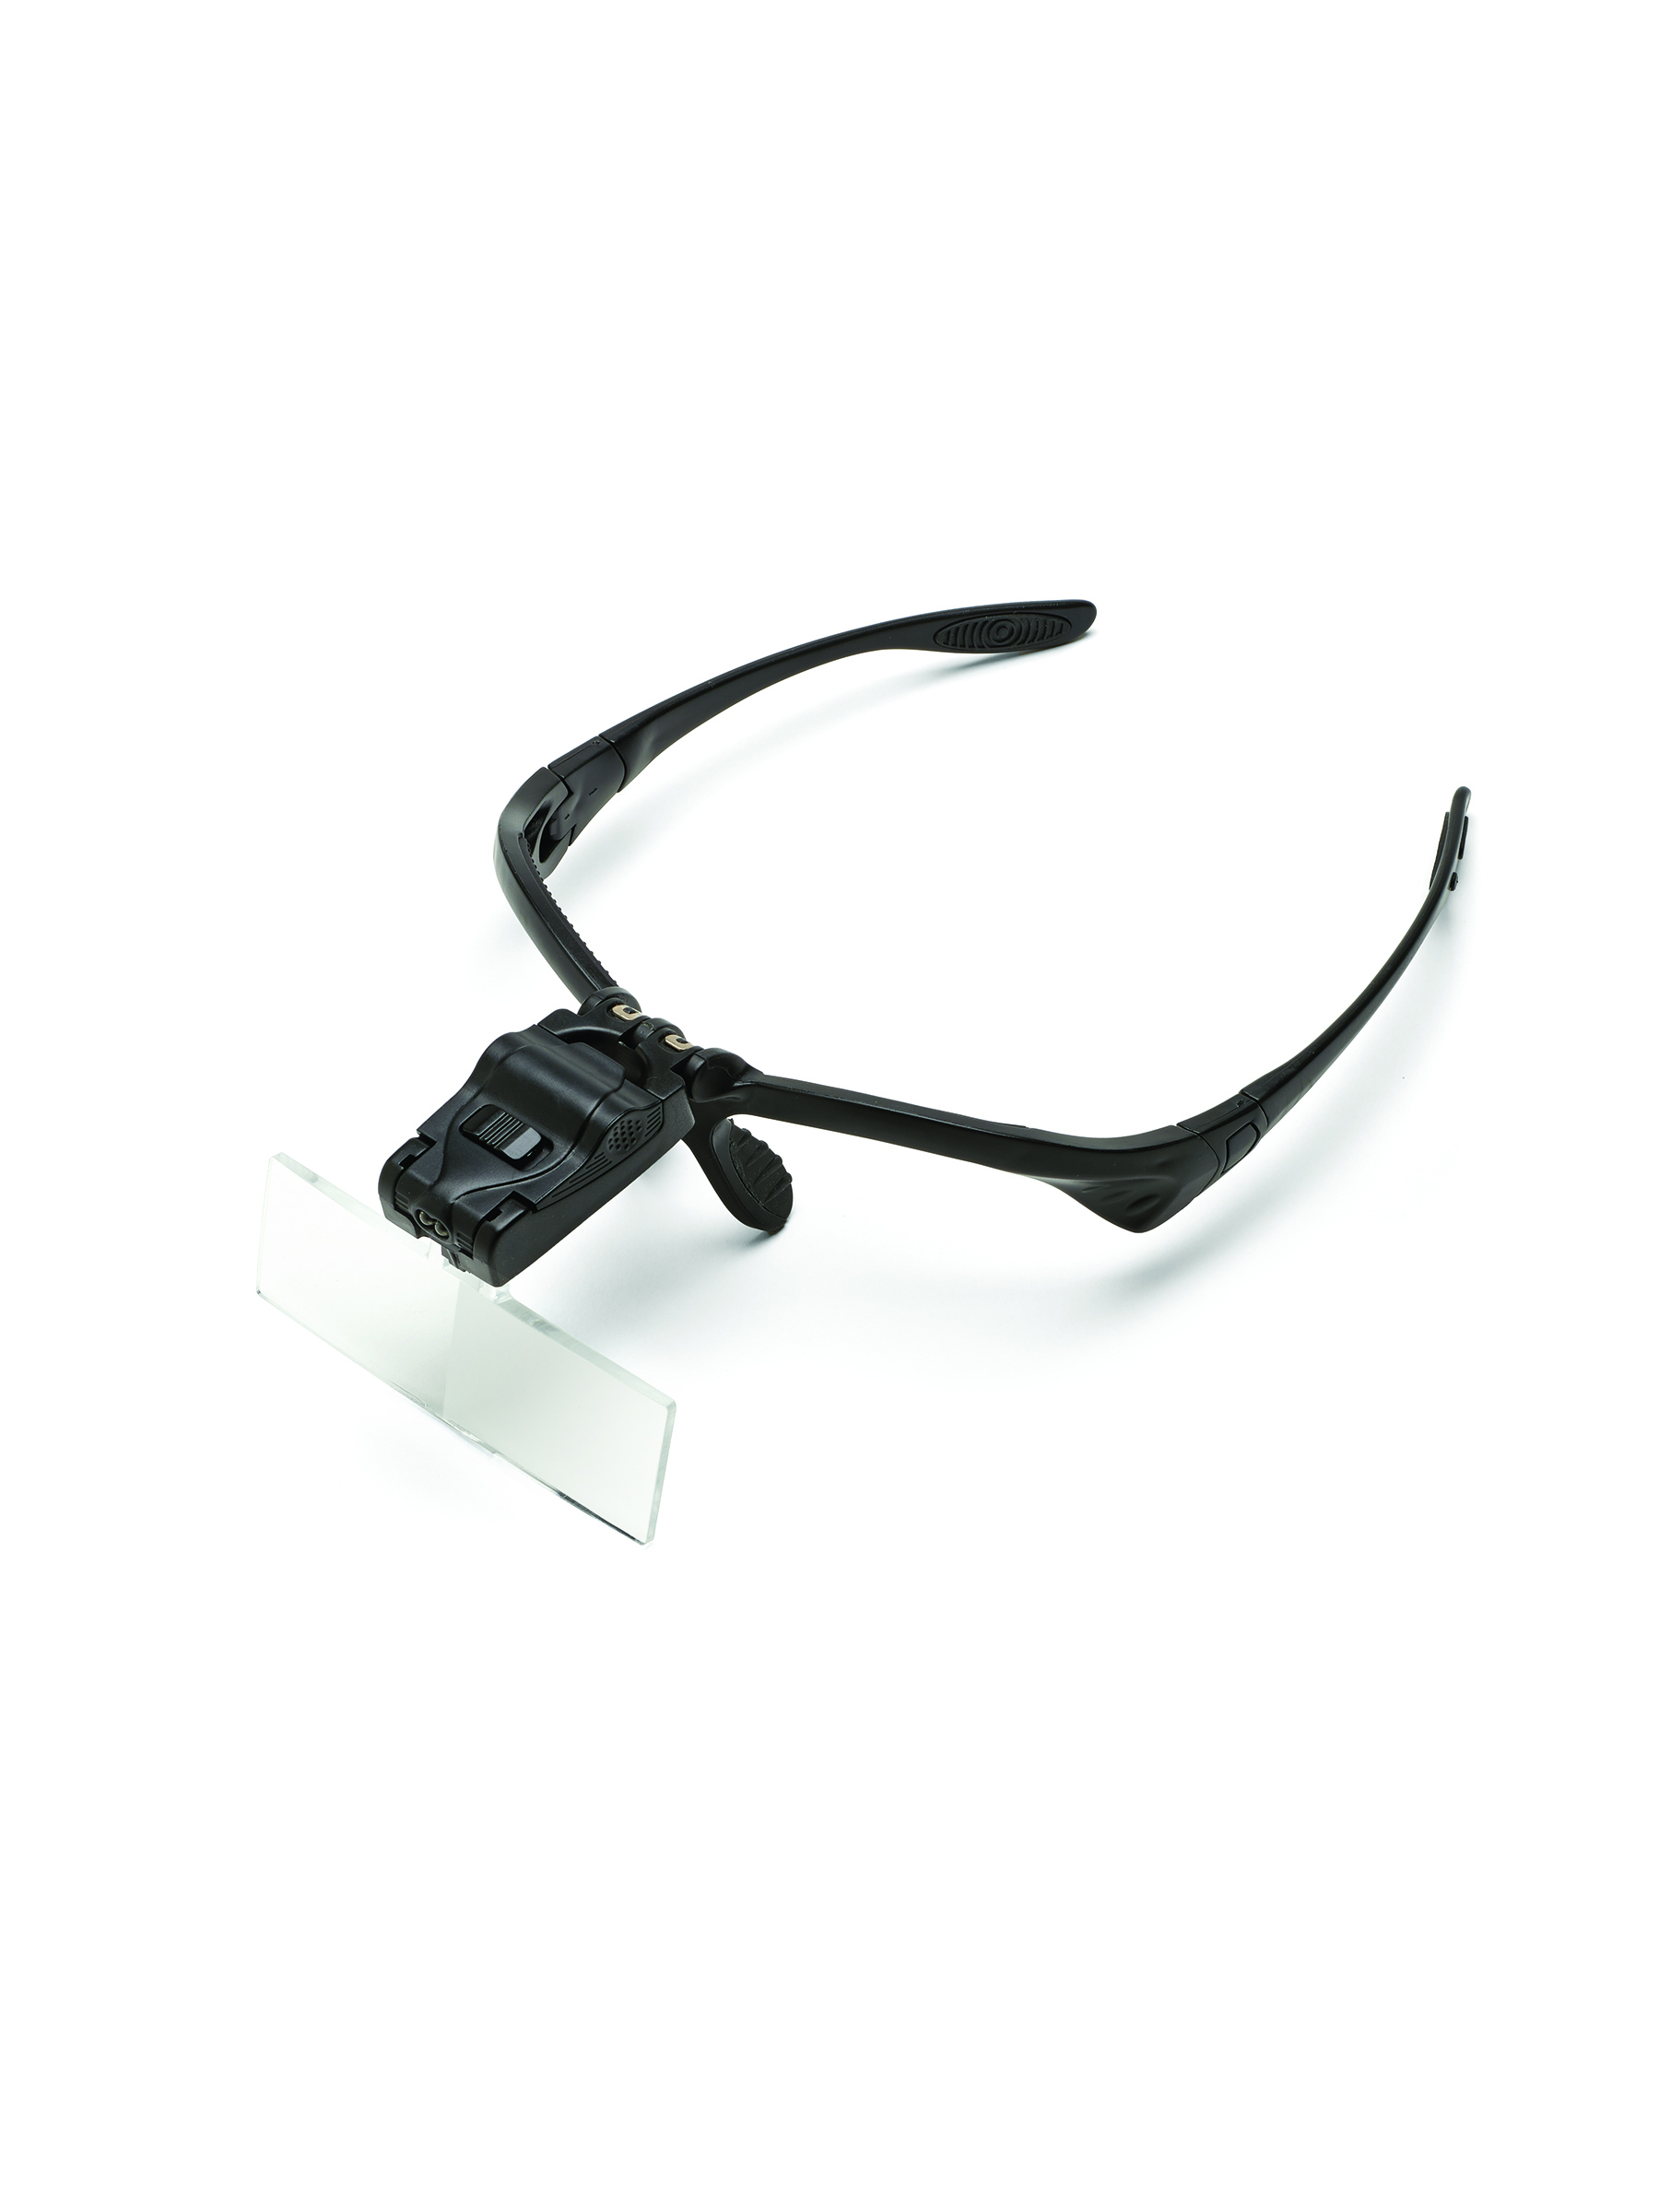 Interchangeable Magnifier Headset with LED